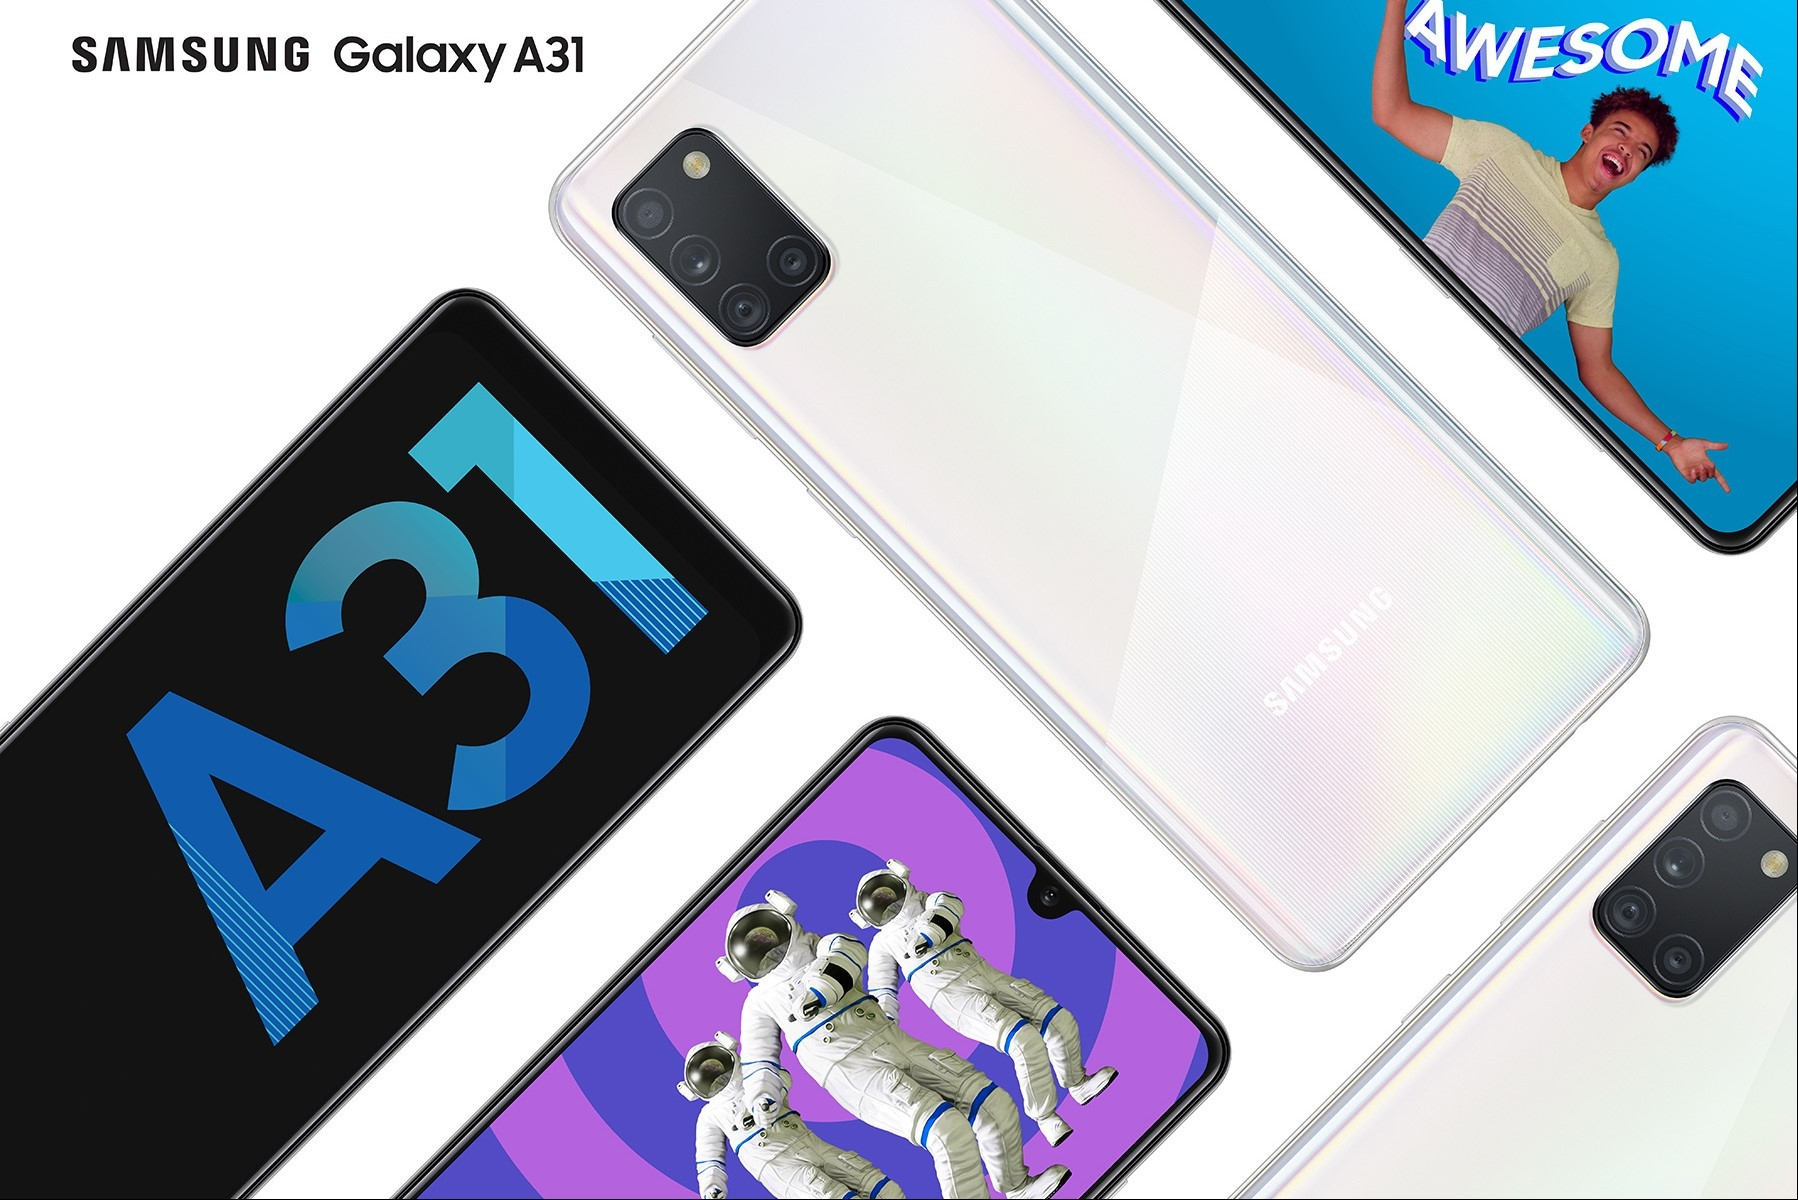 Samsung to release new low-cost smartphone featuring five cameras